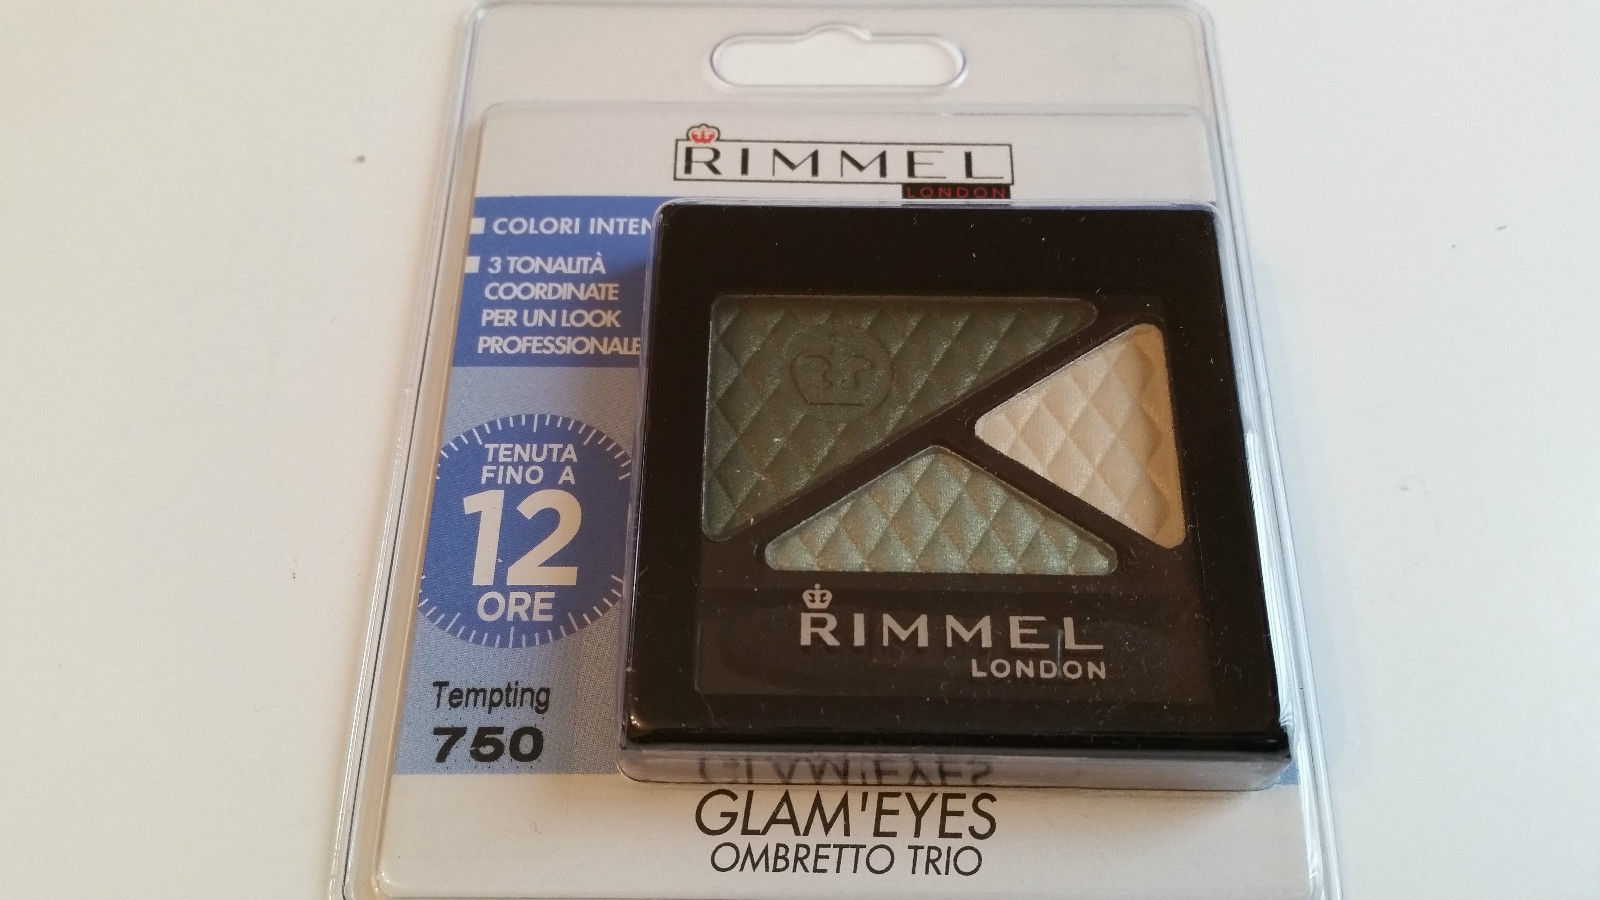 RIMMEL GLAM'EYES TRIO EYESHADOW - 750 TEMPTING